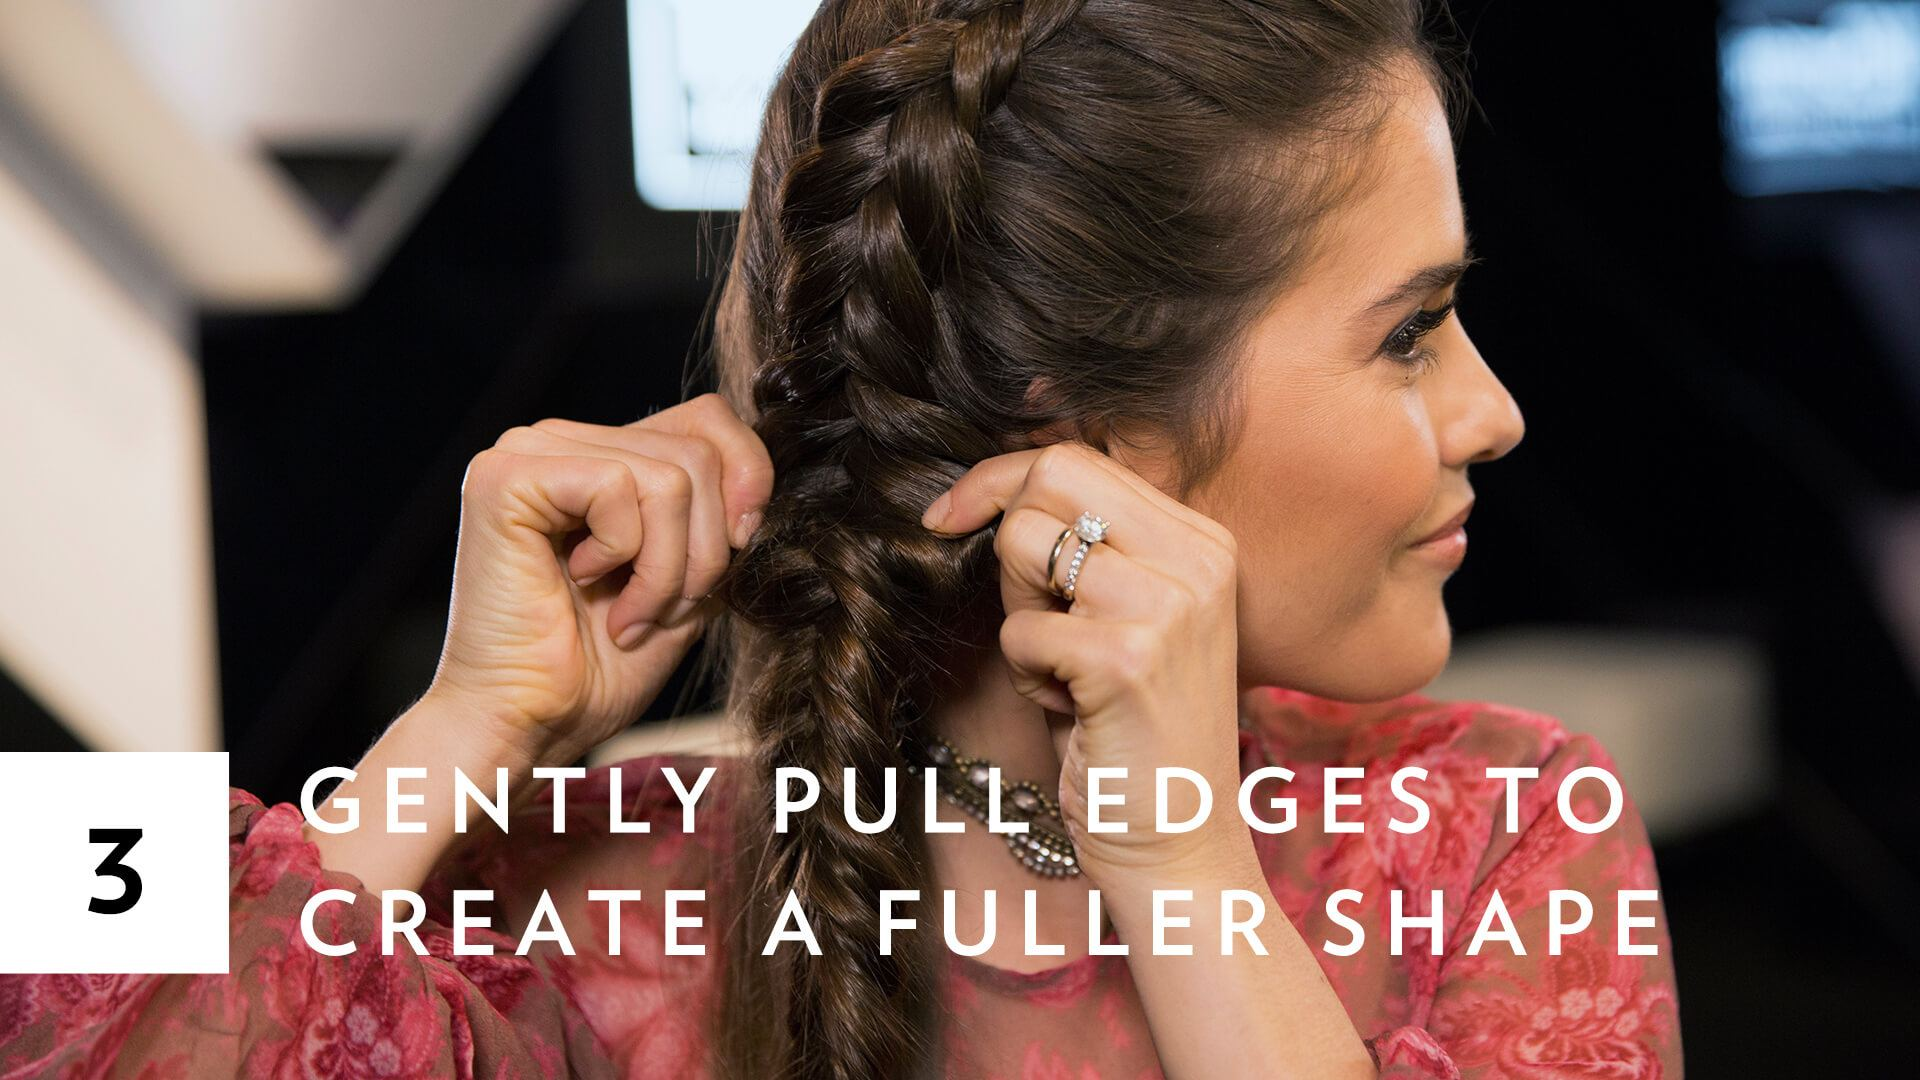 blogger Paola Alberdi from Blank Itinerary pulling mermaid braid to create fuller look